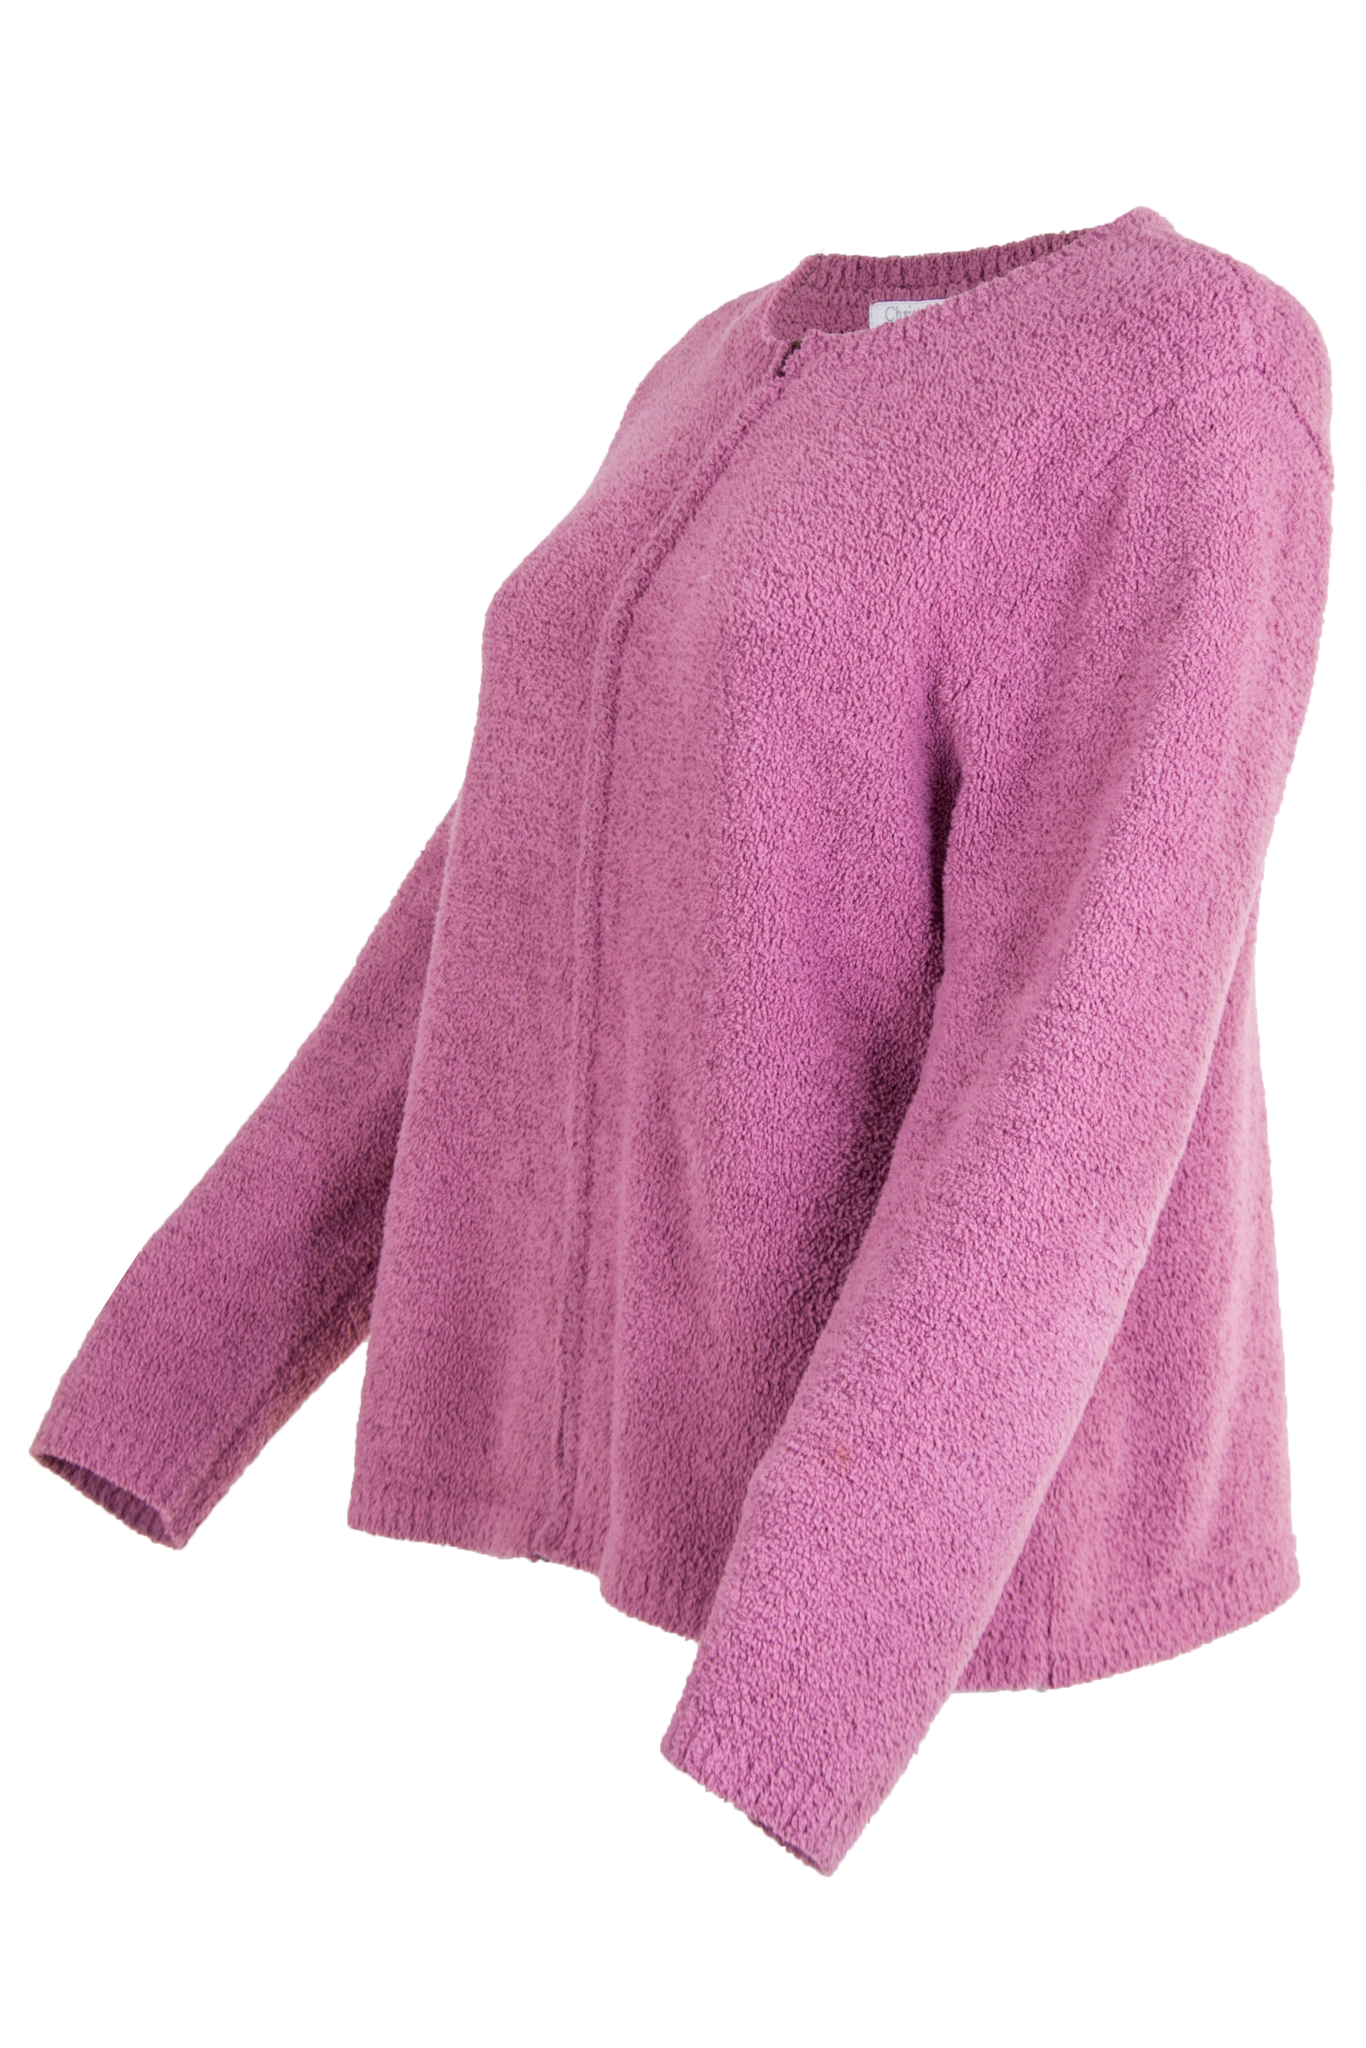 vintage pink sweater with zipper front closure